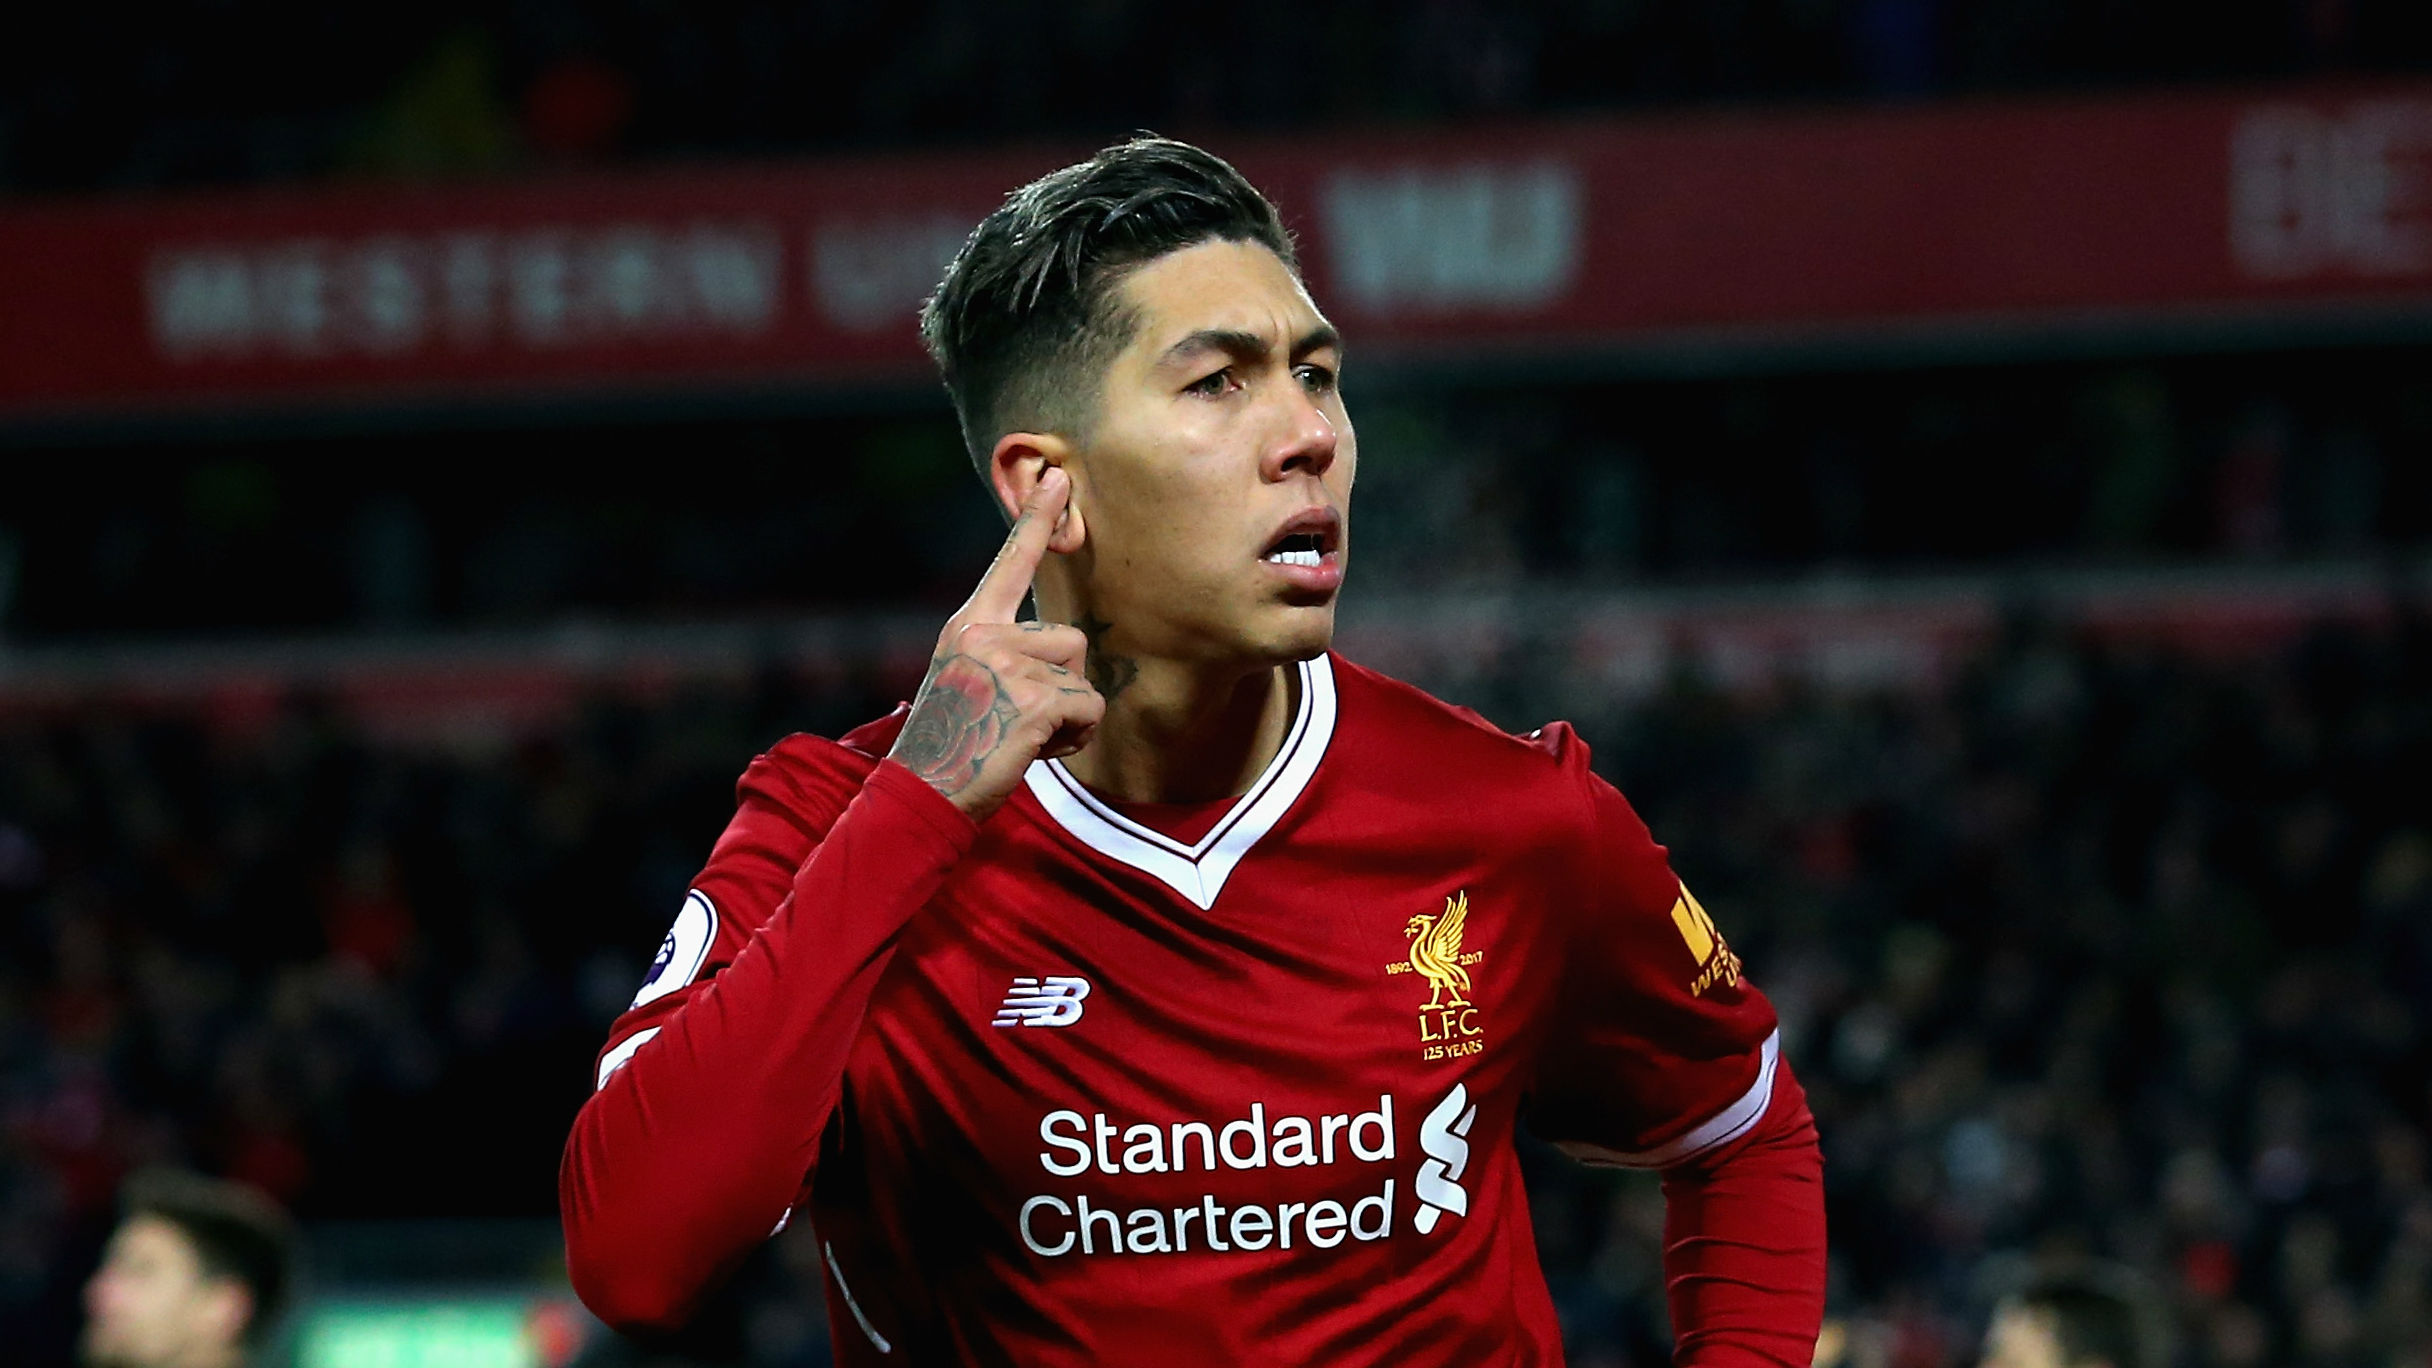 Liverpool lucky to have complete player roberto firmino says reds liverpool lucky to have complete player roberto firmino says reds legend dirk kuyt goal stopboris Gallery